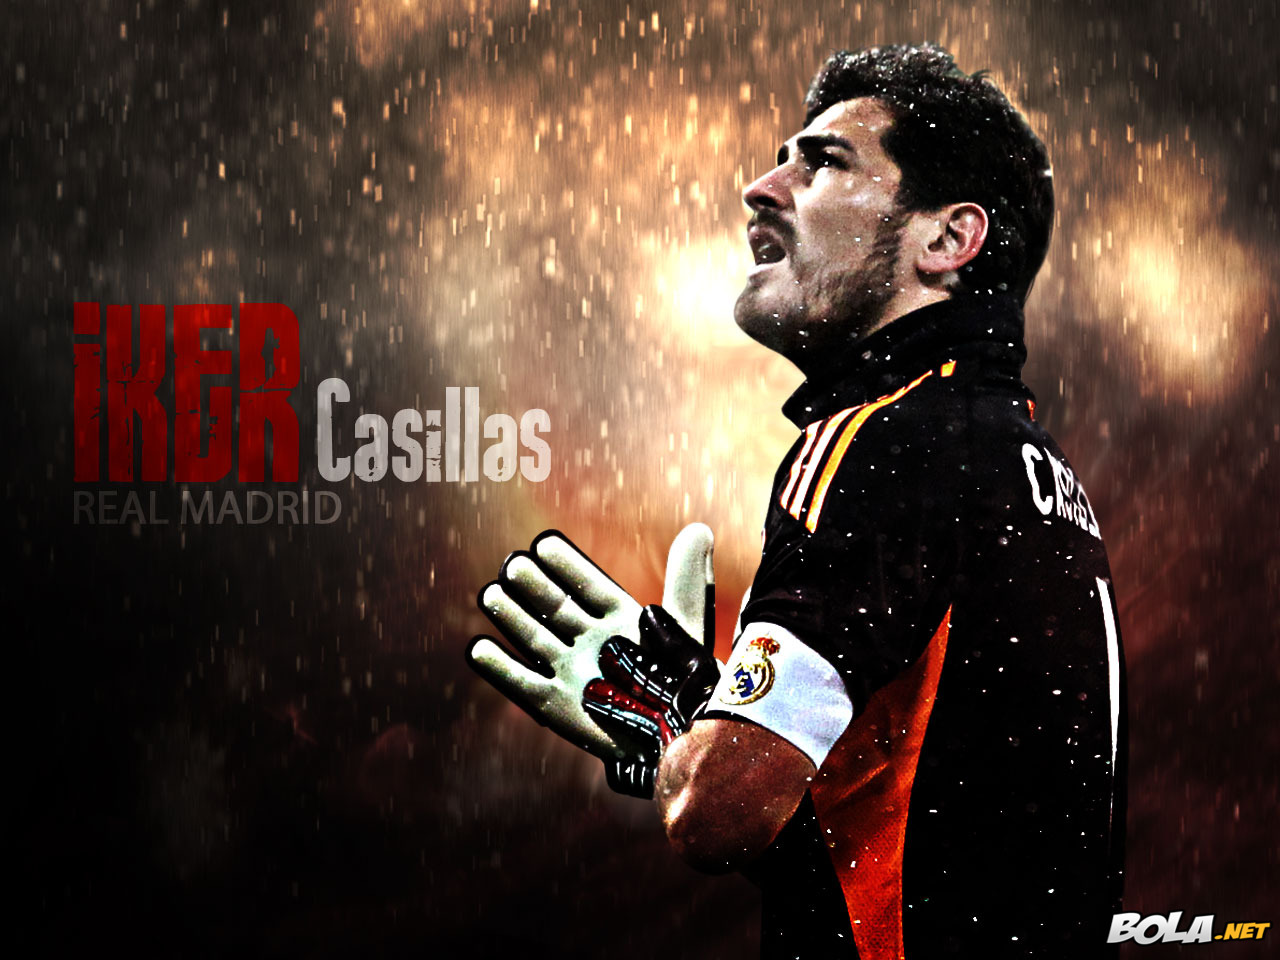 Cristiano Ronaldoiker Casillas Images HD Wallpaper And Background Photos